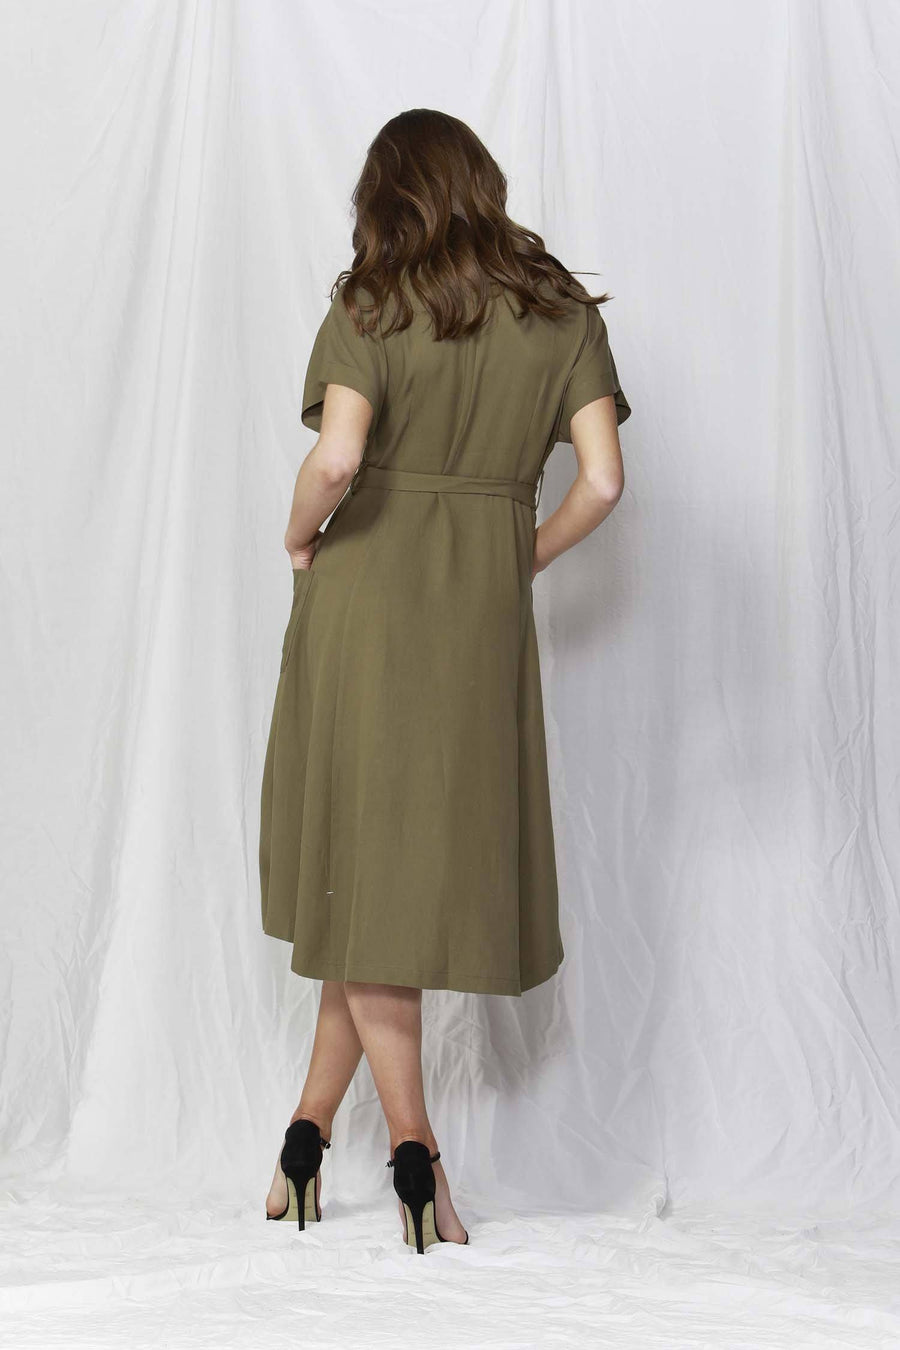 Rush Hour Button-Down Dress in Olive